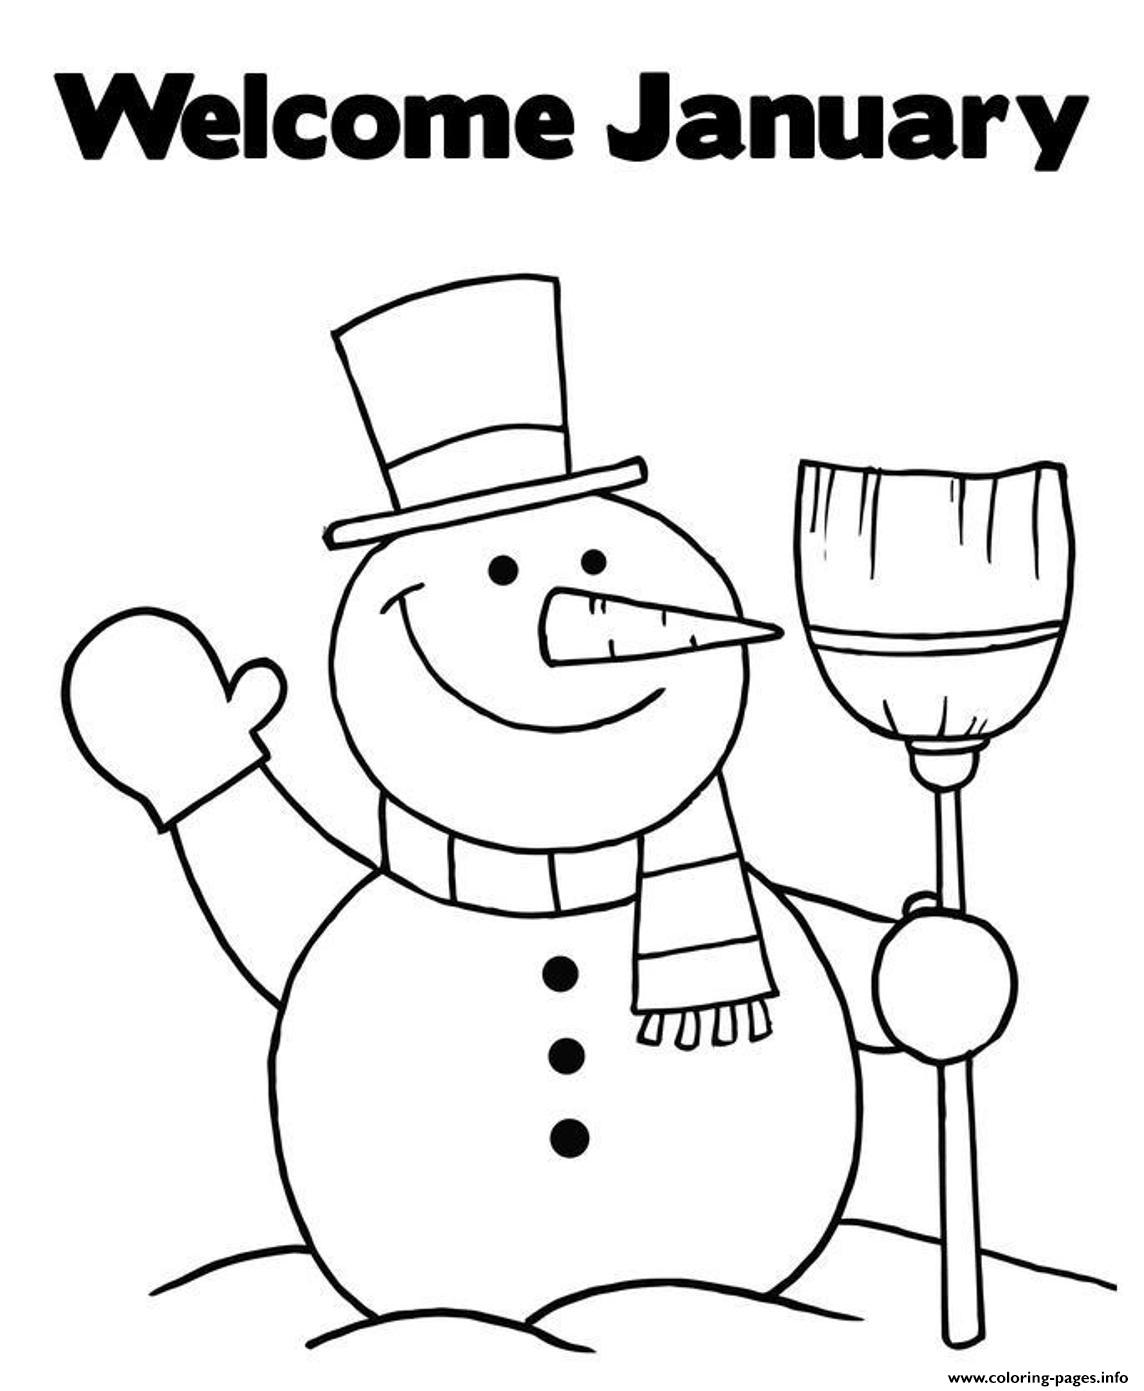 Wele January Snowman S5f24 Coloring Pages Printable